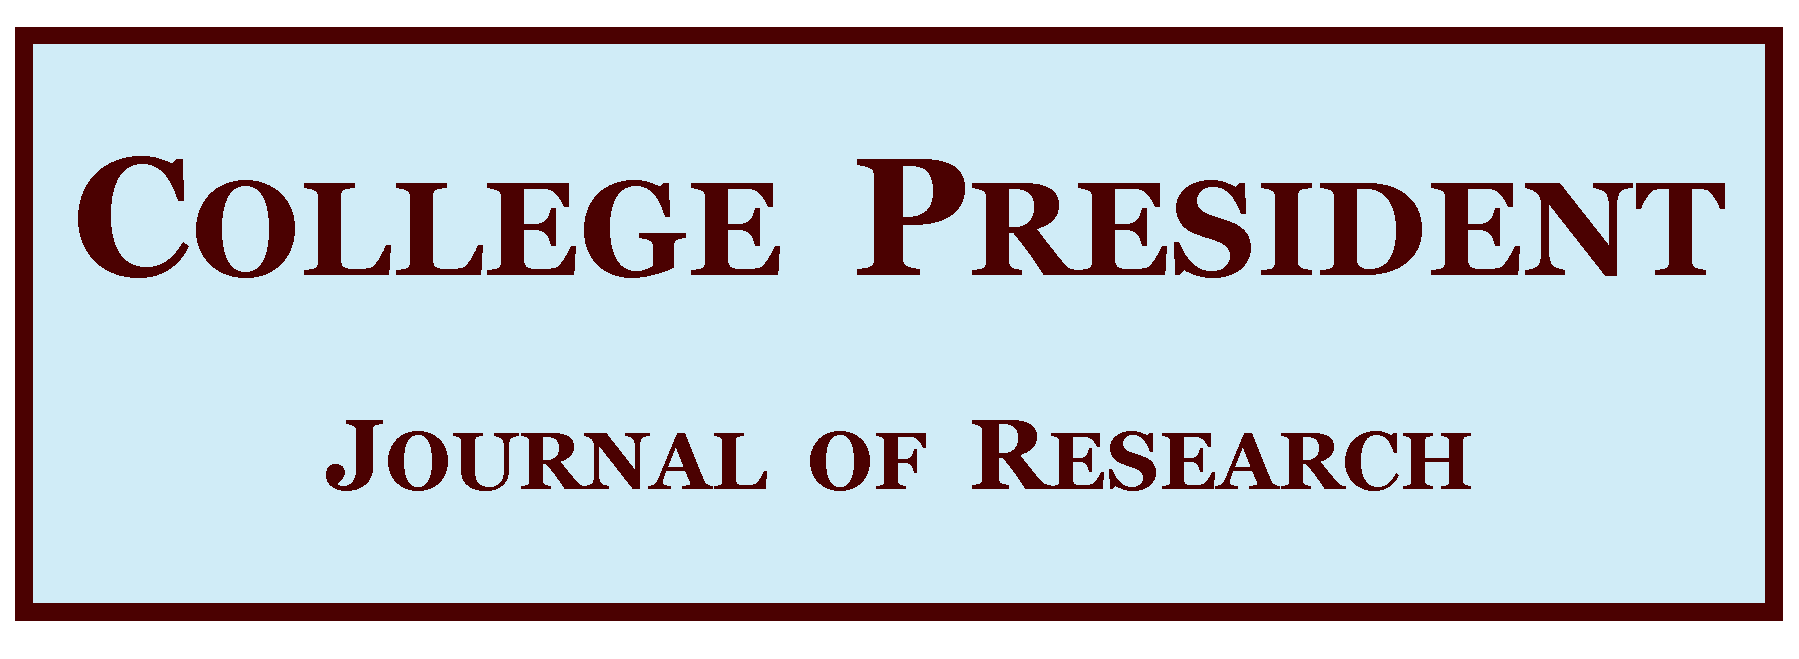 Journal of Research on the College President